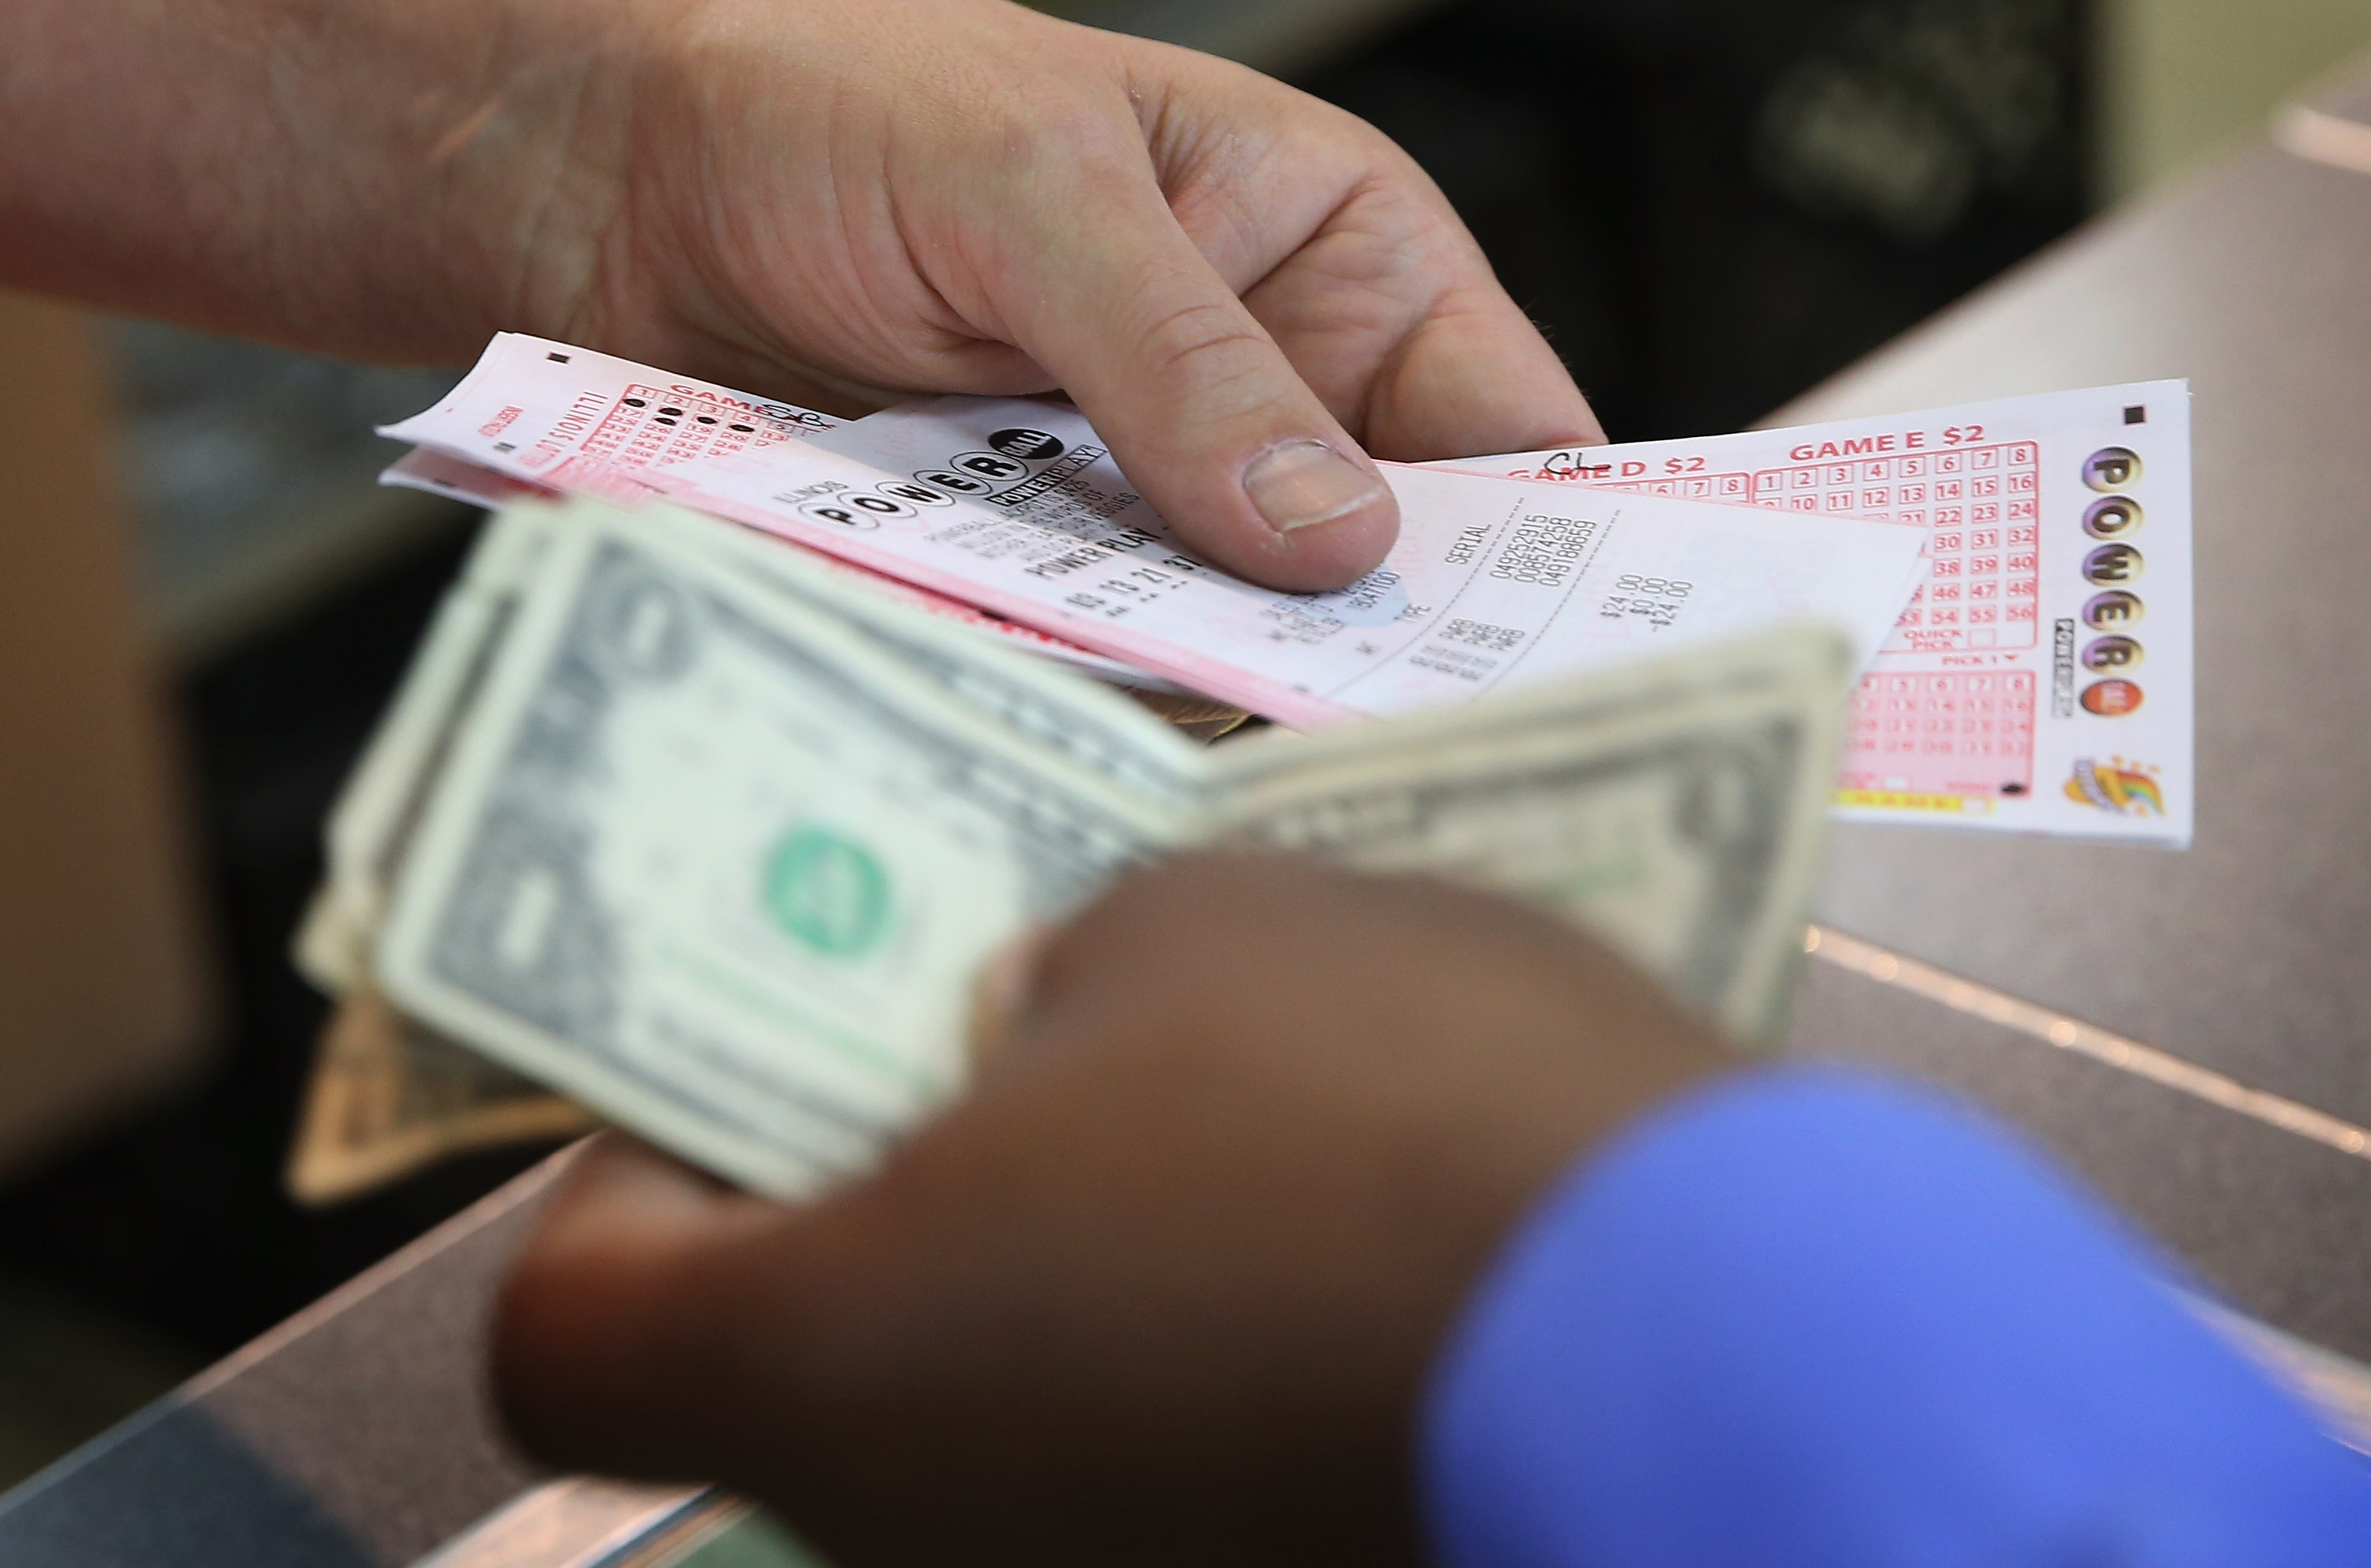 A customer purchases a Powerball lottery ticket at a 7-Eleven store on August 7, 2013 in Chicago, Illinois.